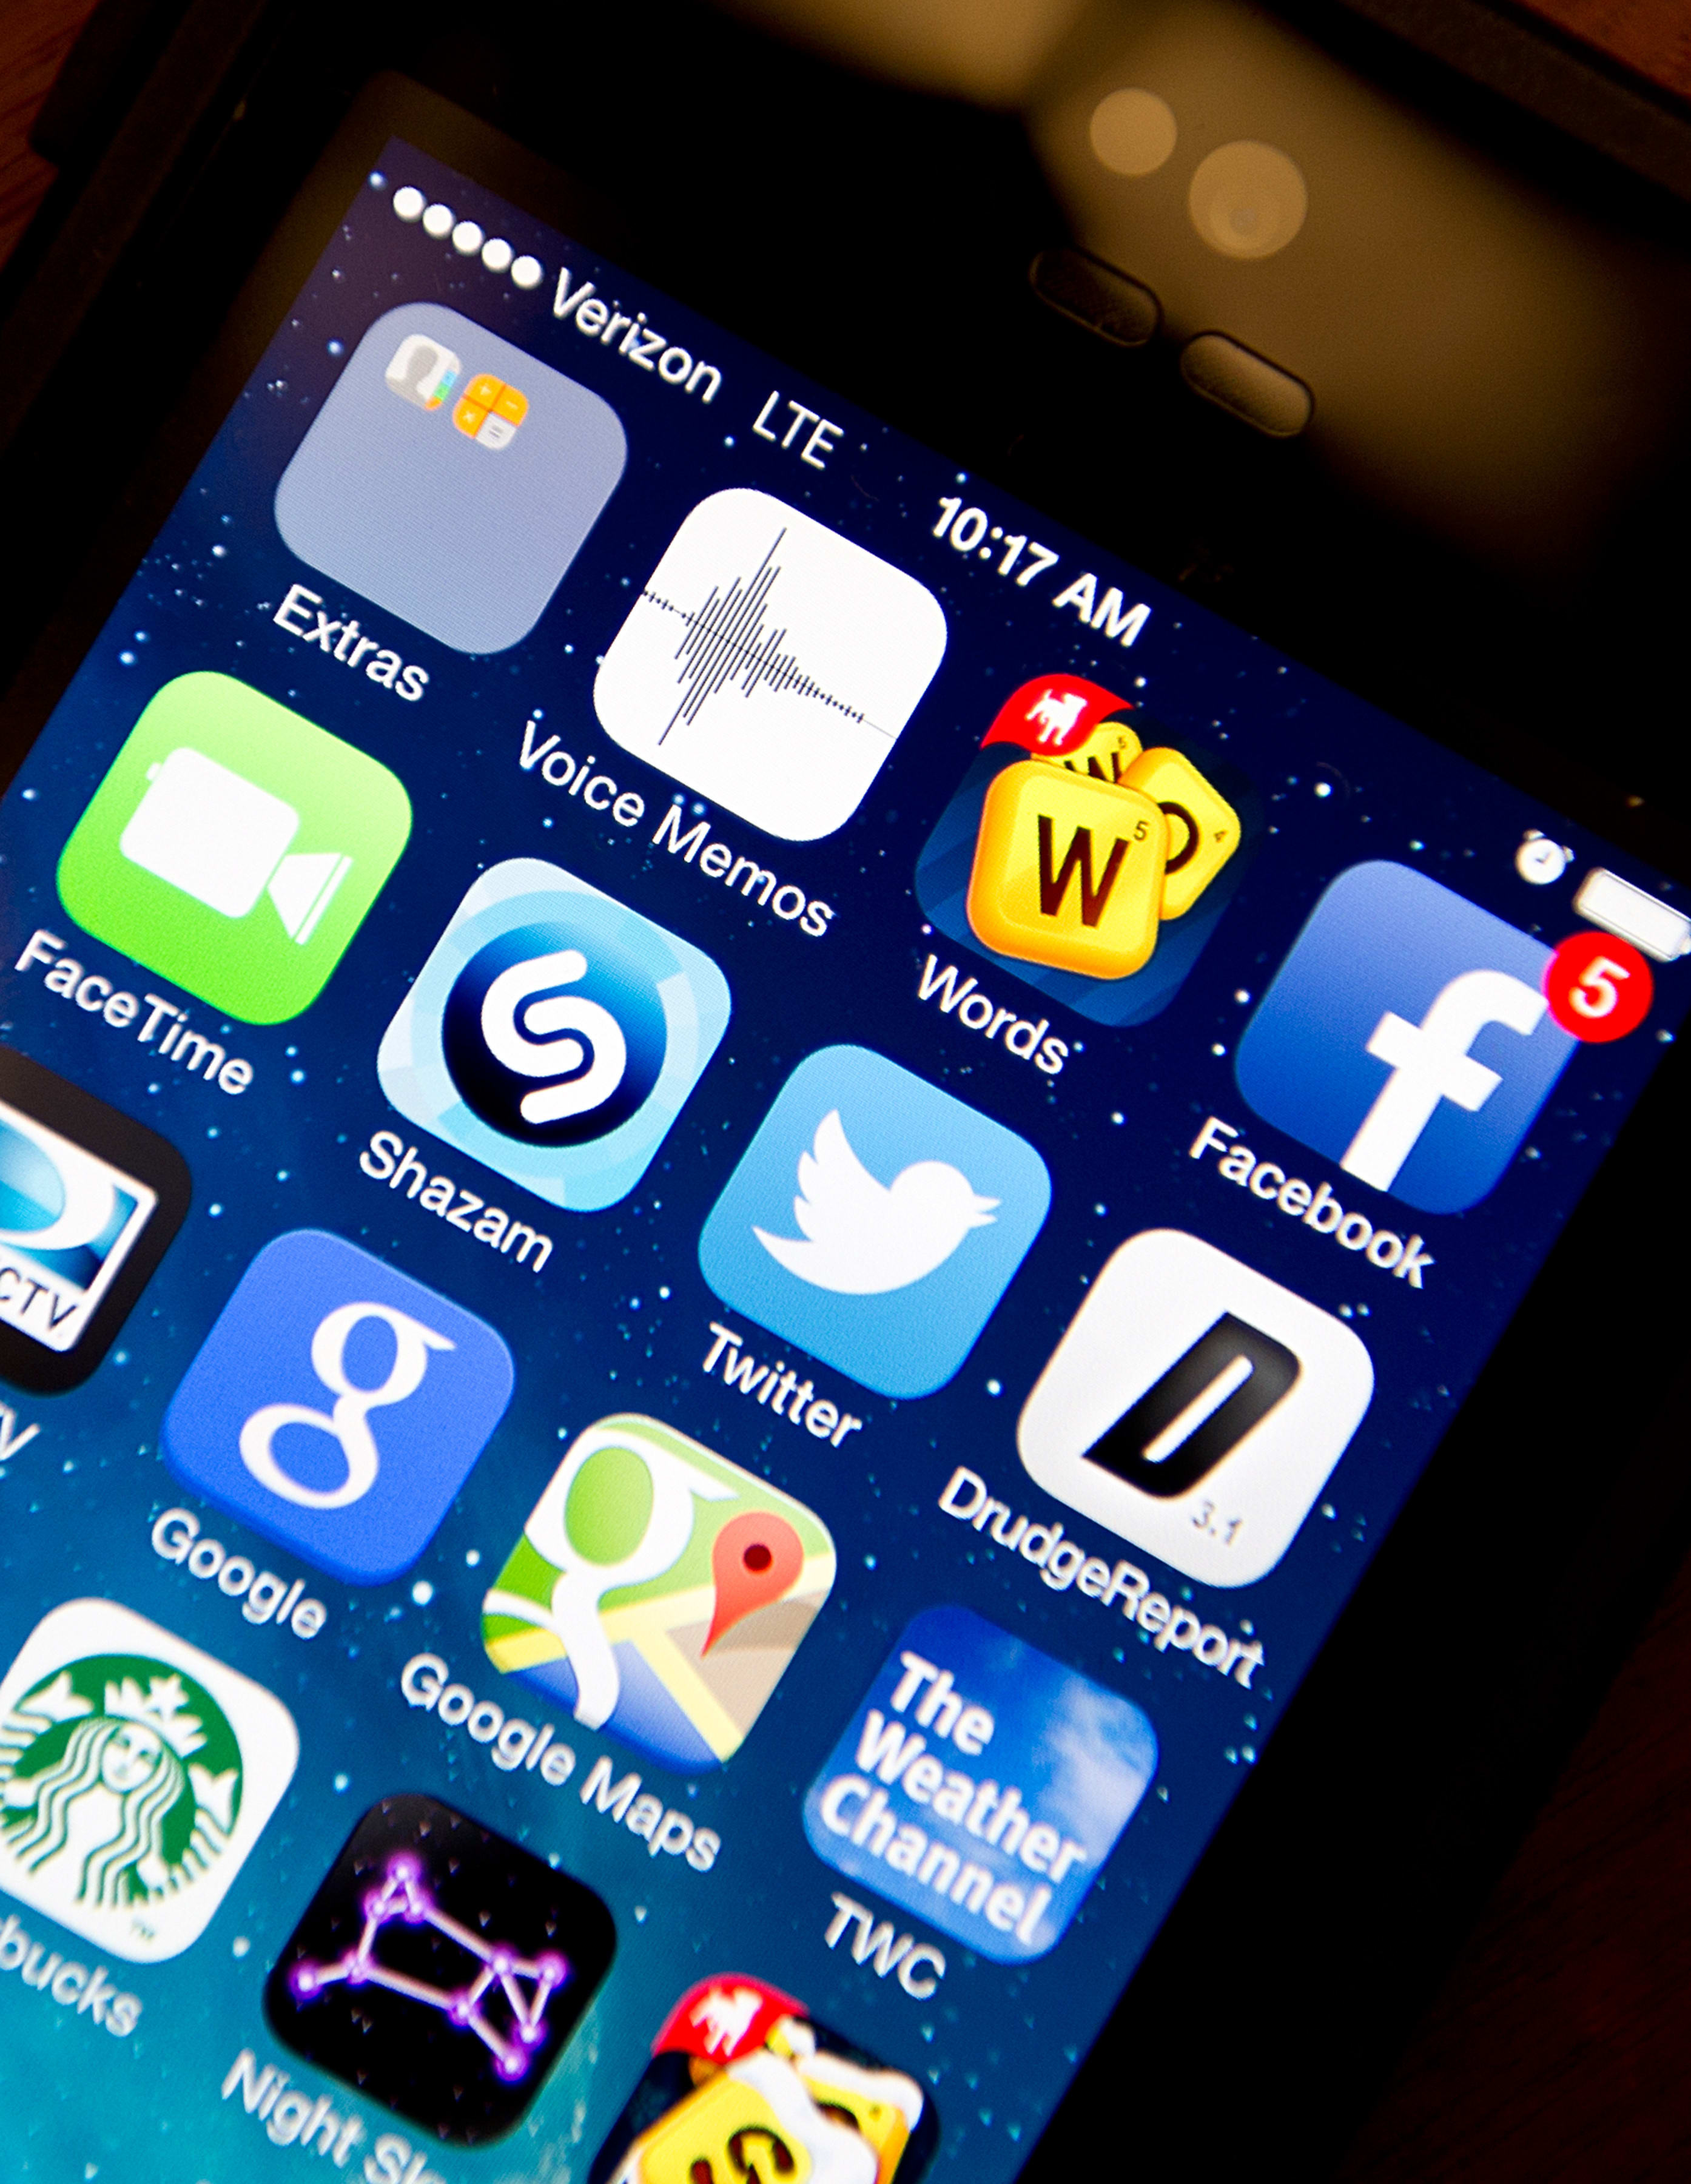 Smartphone owners use an average of 27 apps per month